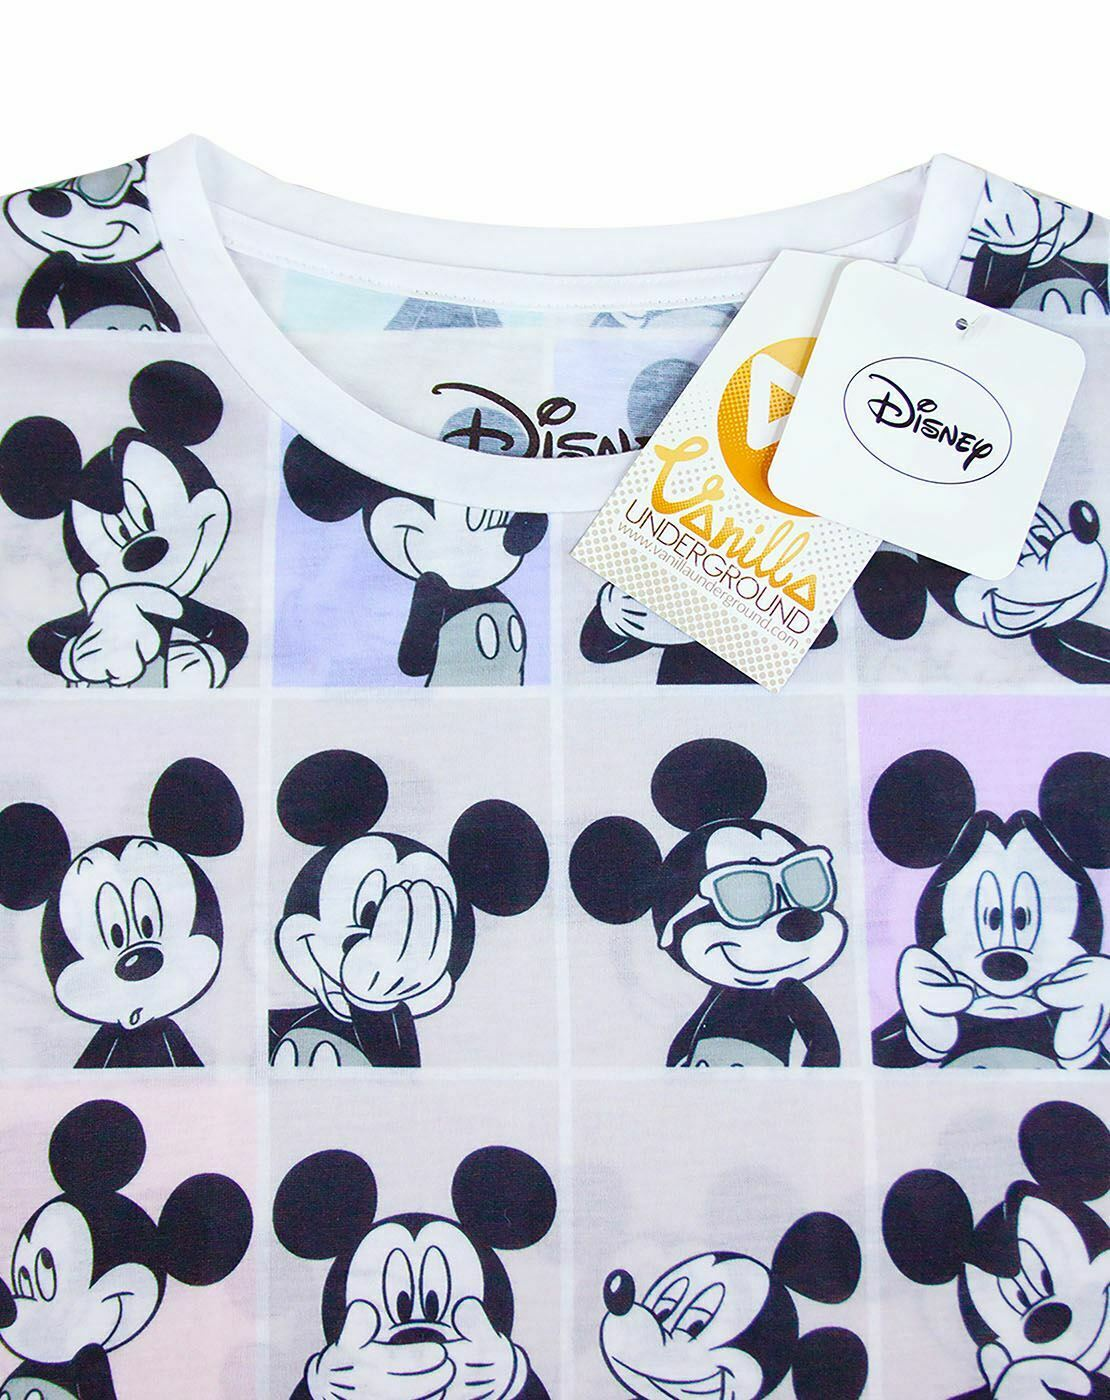 Disney-Mickey-Mouse-Photobooth-All-Over-Print-Women-039-s-T-shirt thumbnail 9